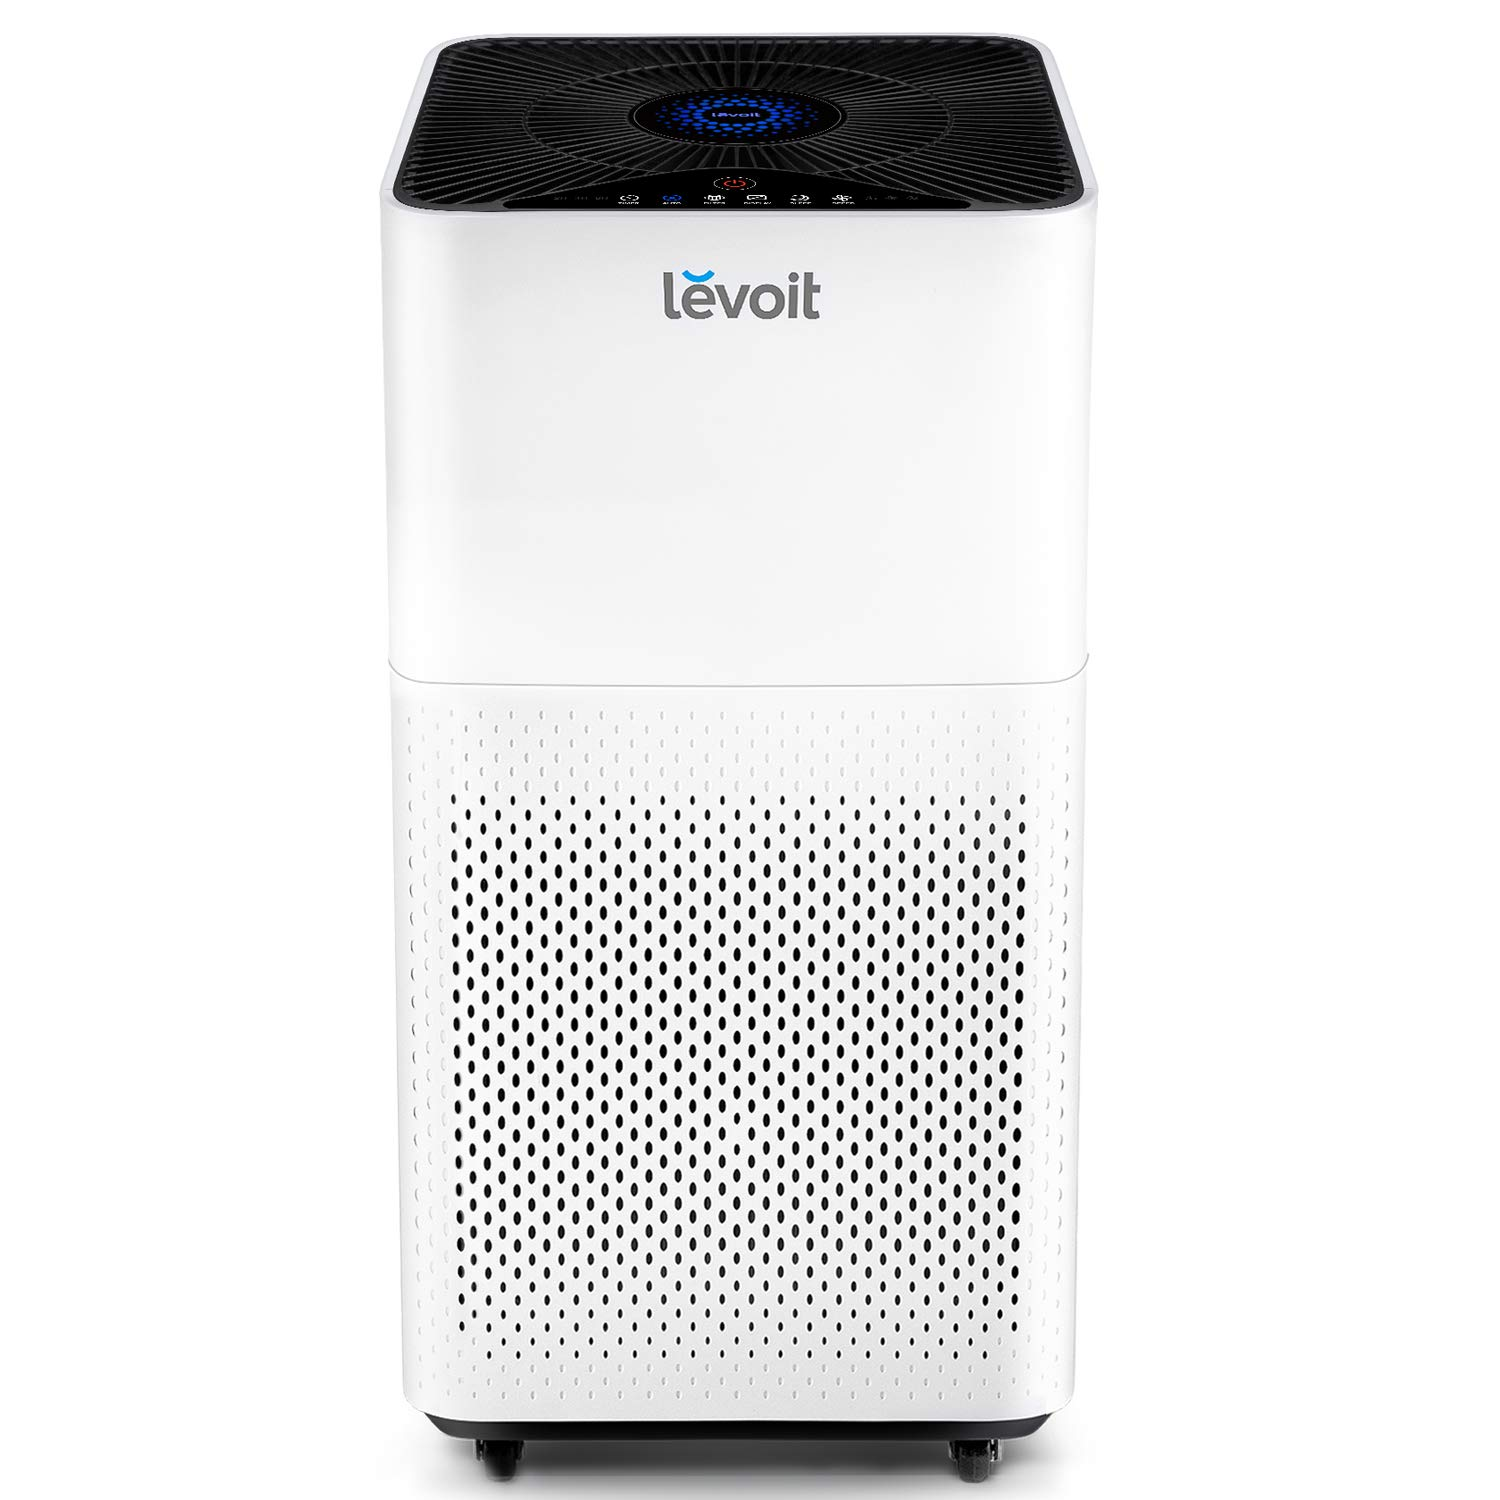 levoit lv-h135 review